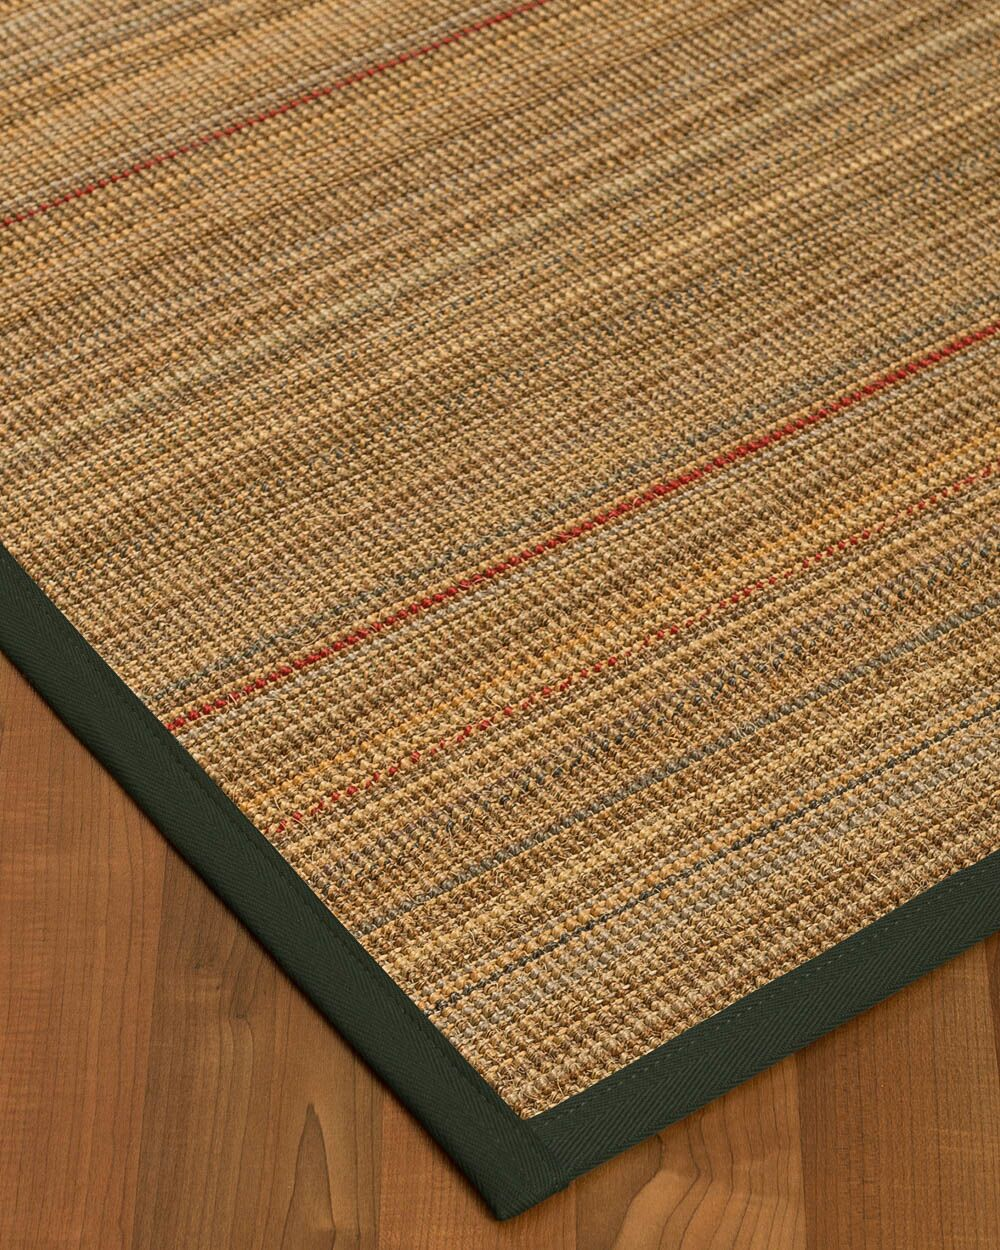 Kimble Hand-Woven Beige Area Rug Rug Size: Rectangle 8' x 10'